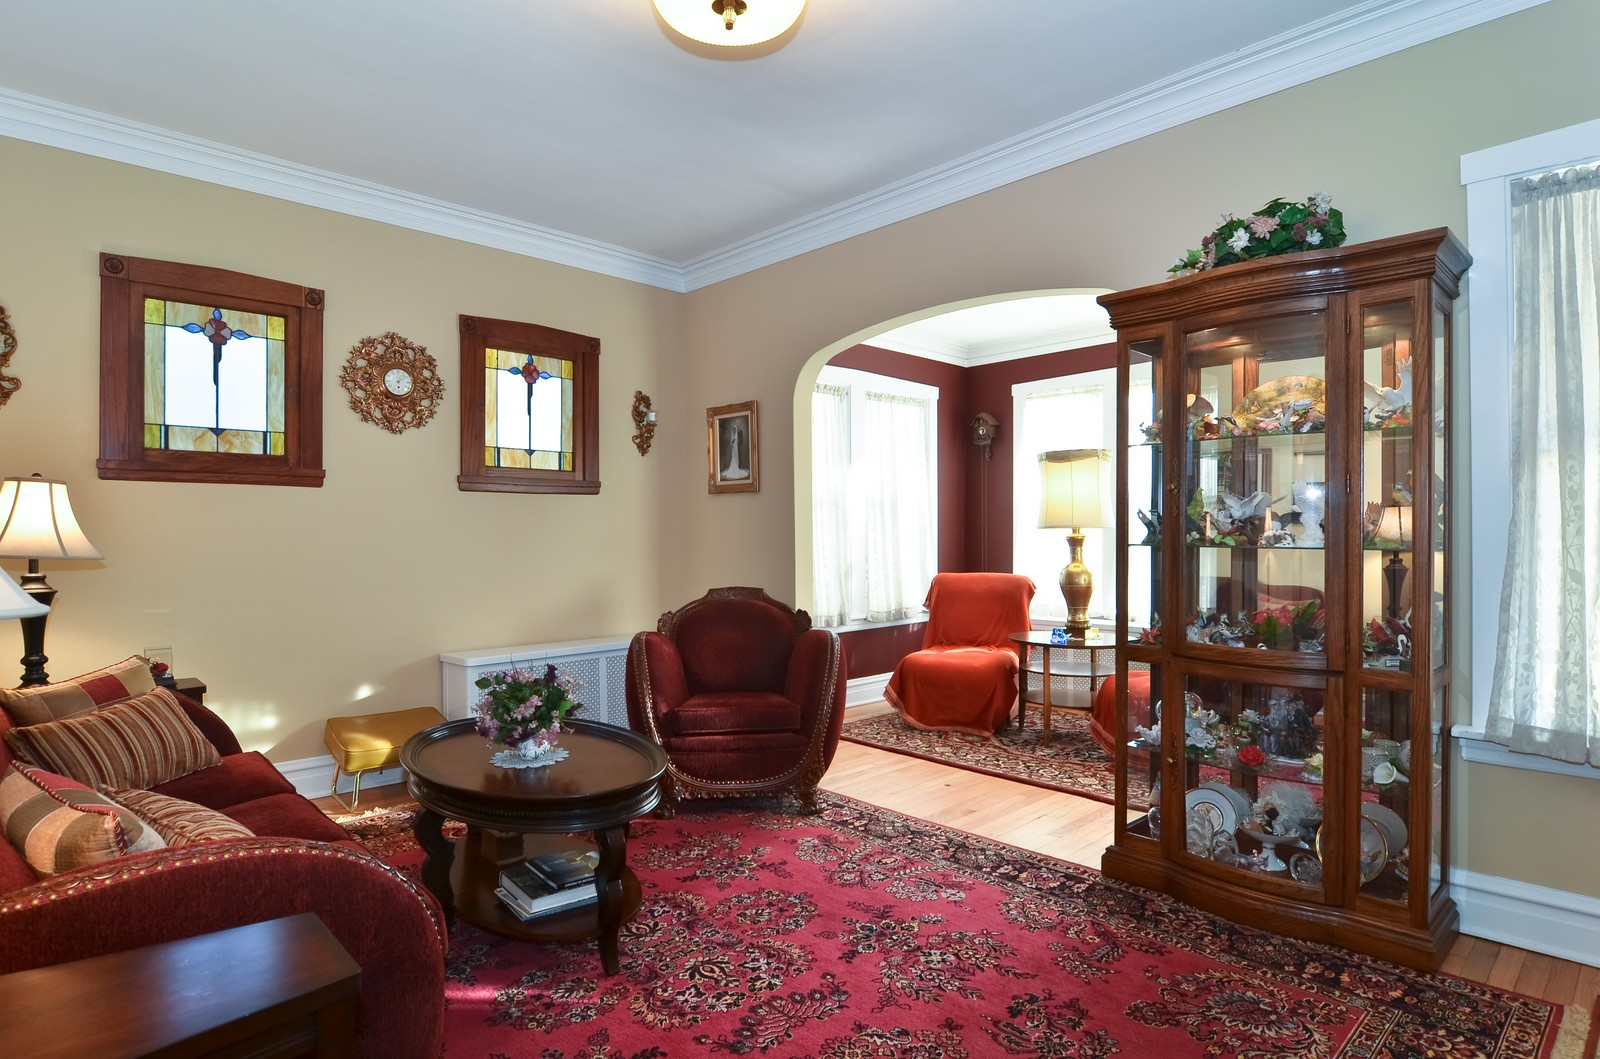 Real Estate Photography - 4808 W Gunnison, Chicago, IL, 60630 - Living Room